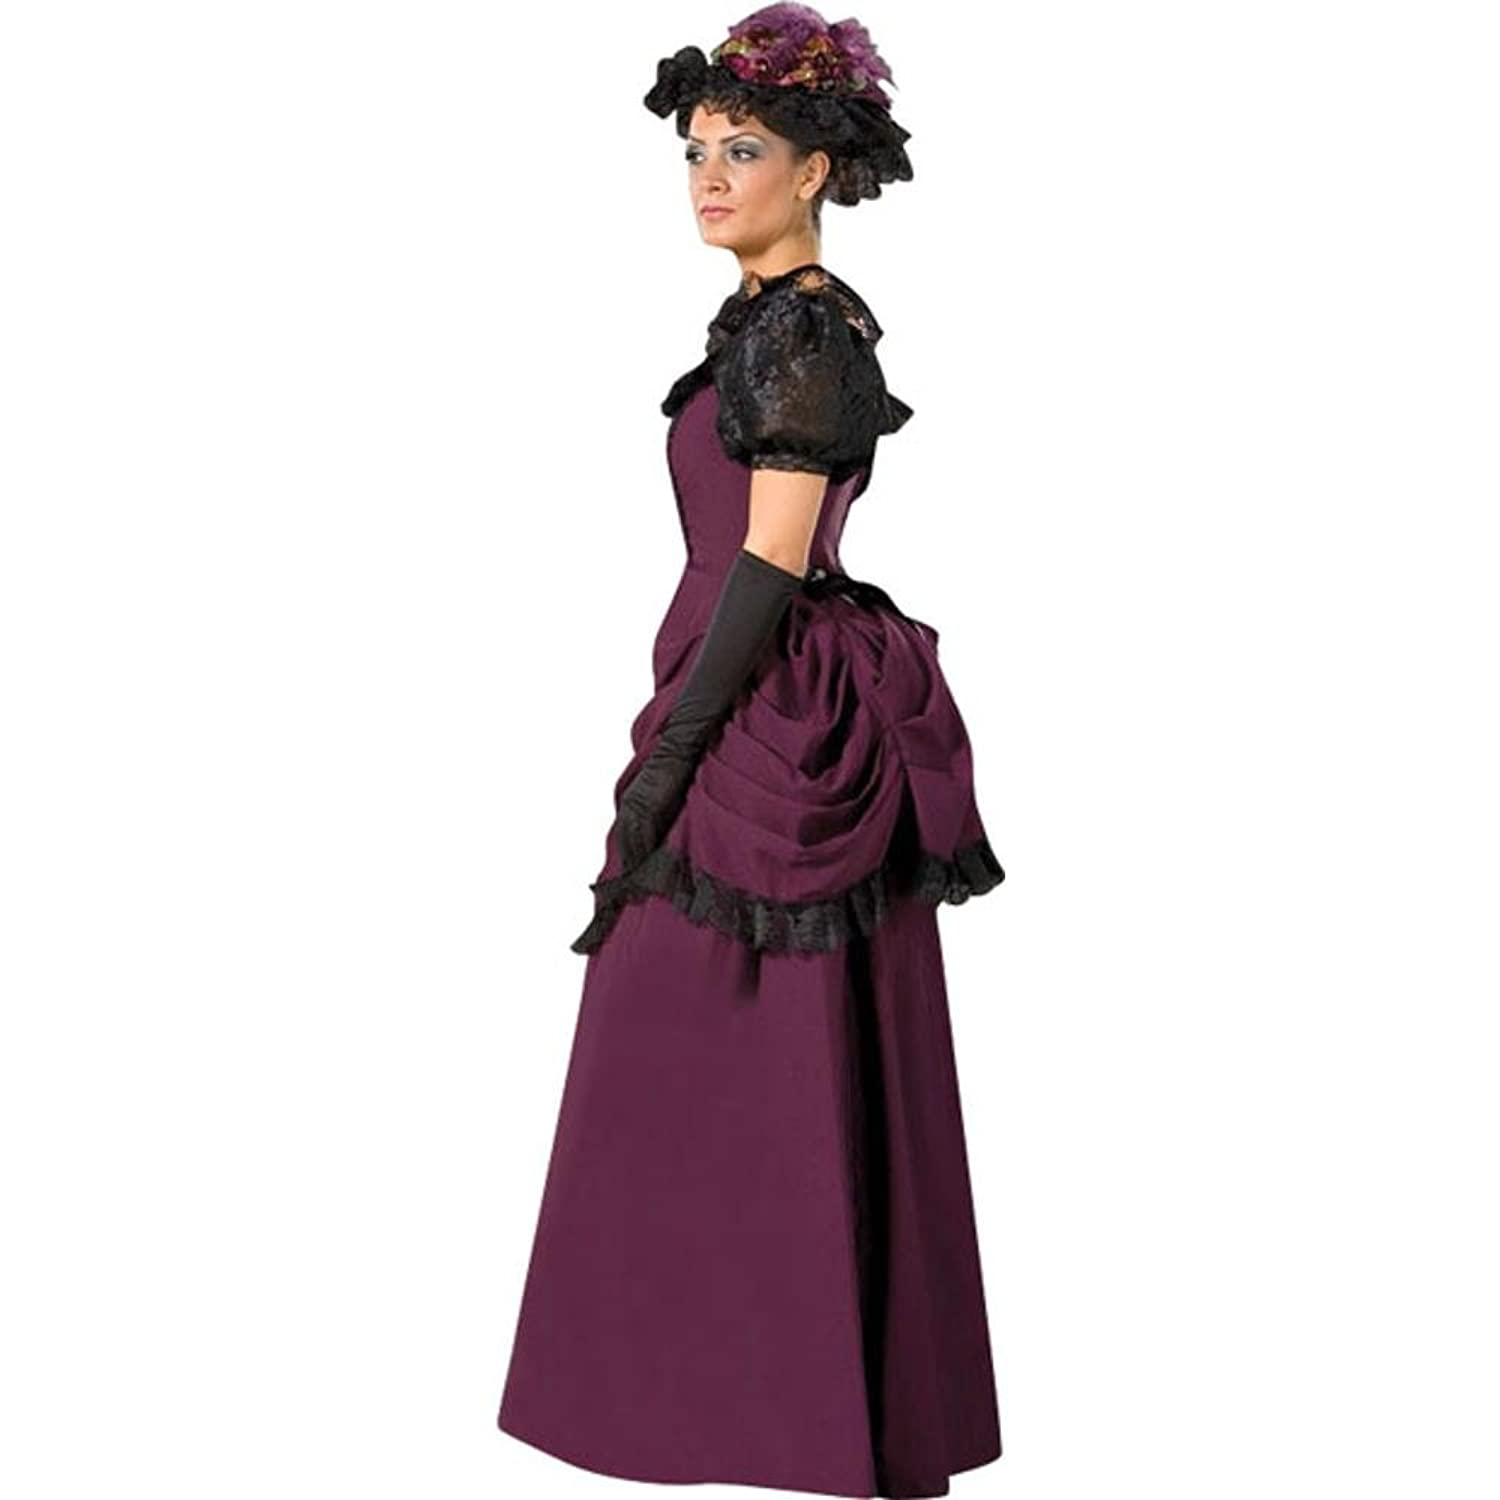 DowntonAbbeyInspiredDresses Womens 19th Centry Victorian Dress Theater Costume $253.99 AT vintagedancer.com